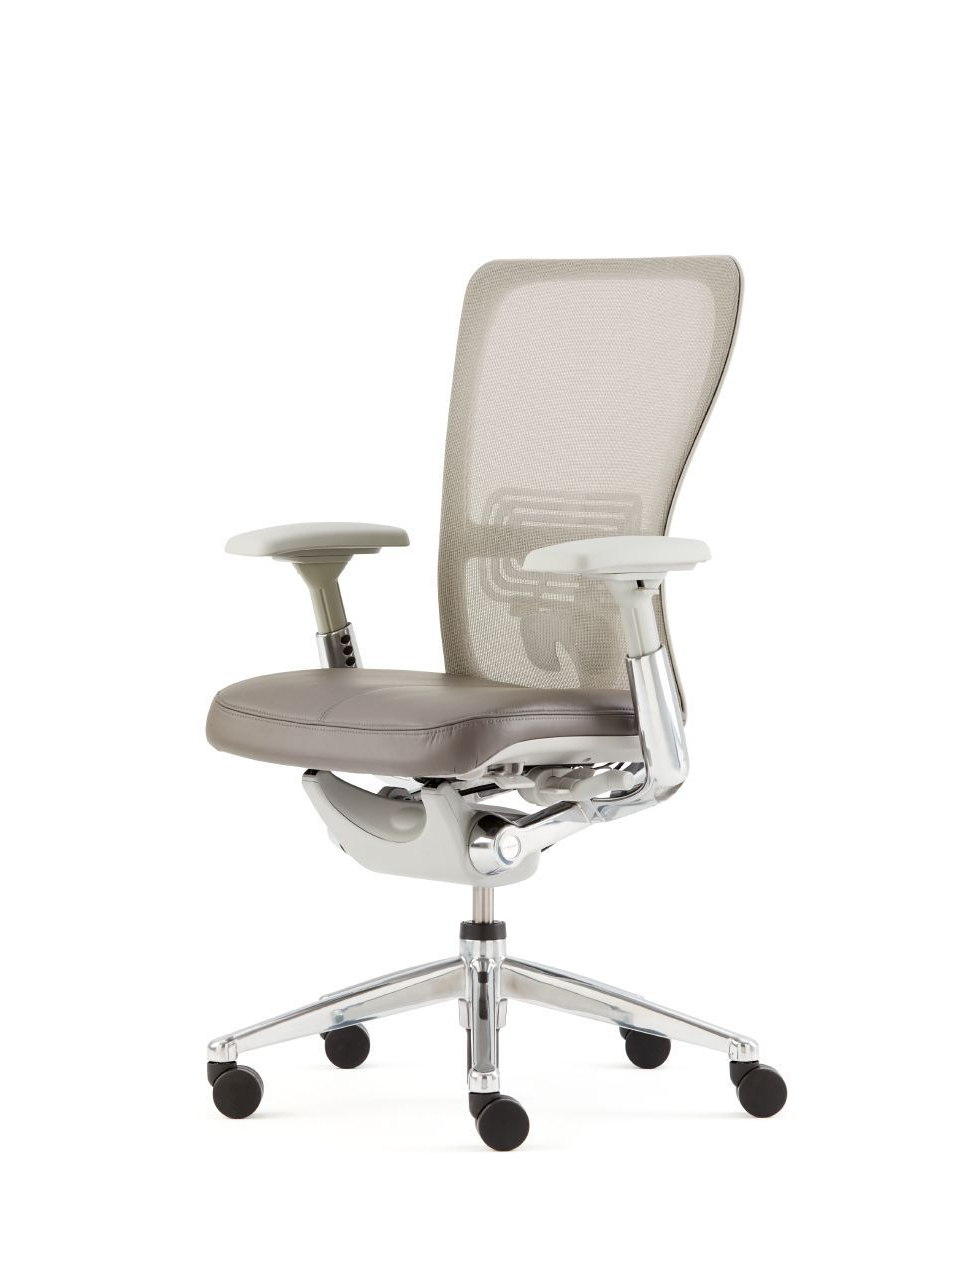 Ergonomic Desk Chairs (Gallery 13 of 20)